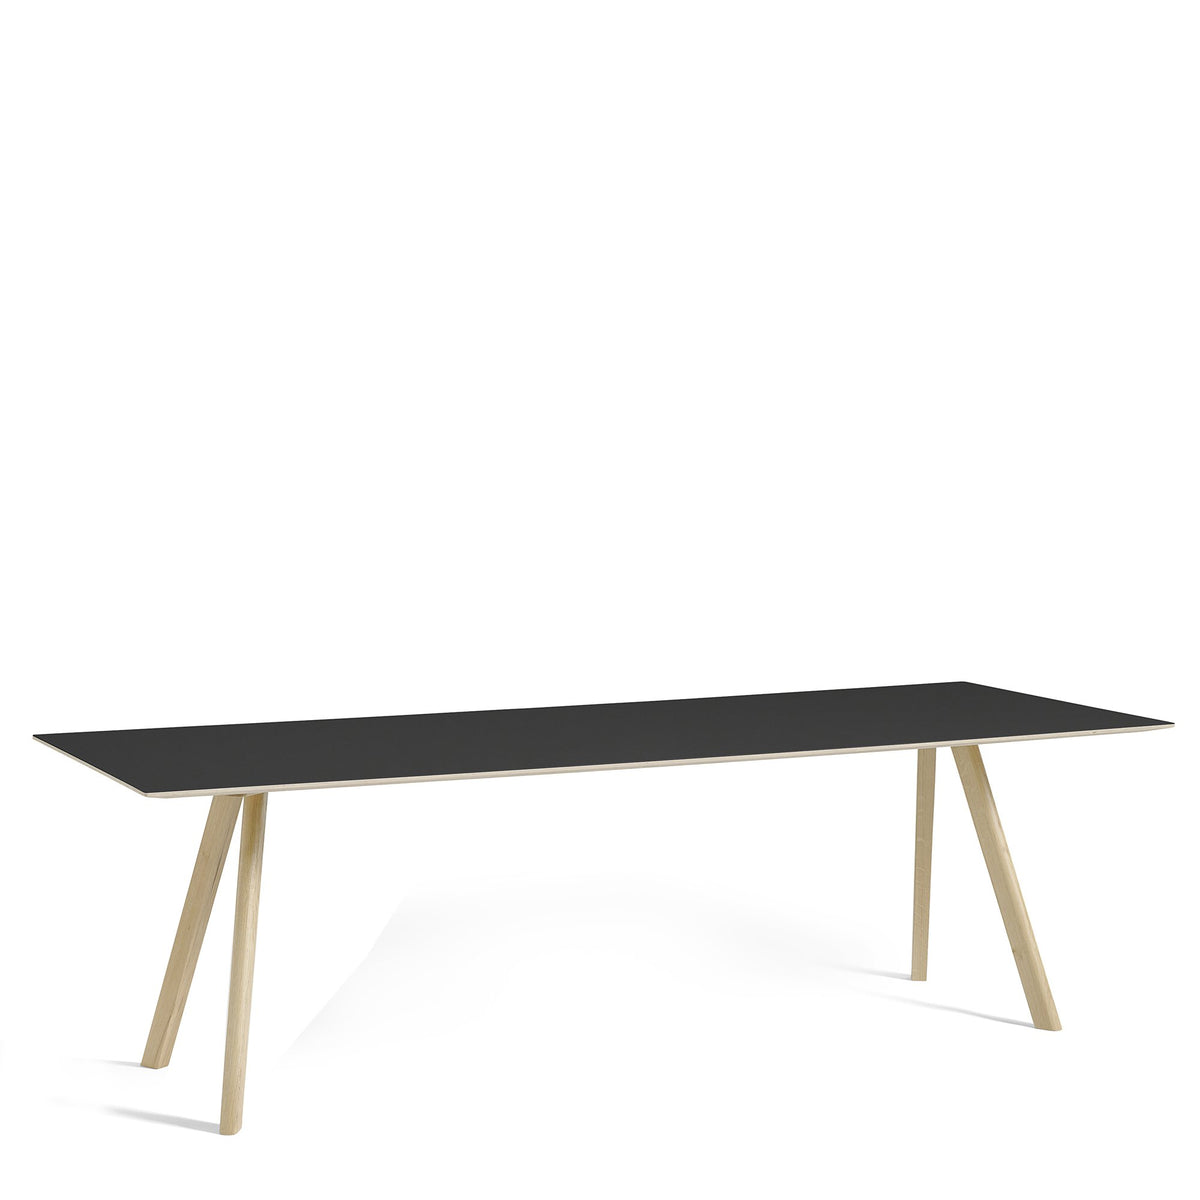 HAY CPH Table 2500mm Forbo Nero 4023 with Matt Lacquered Oak Base